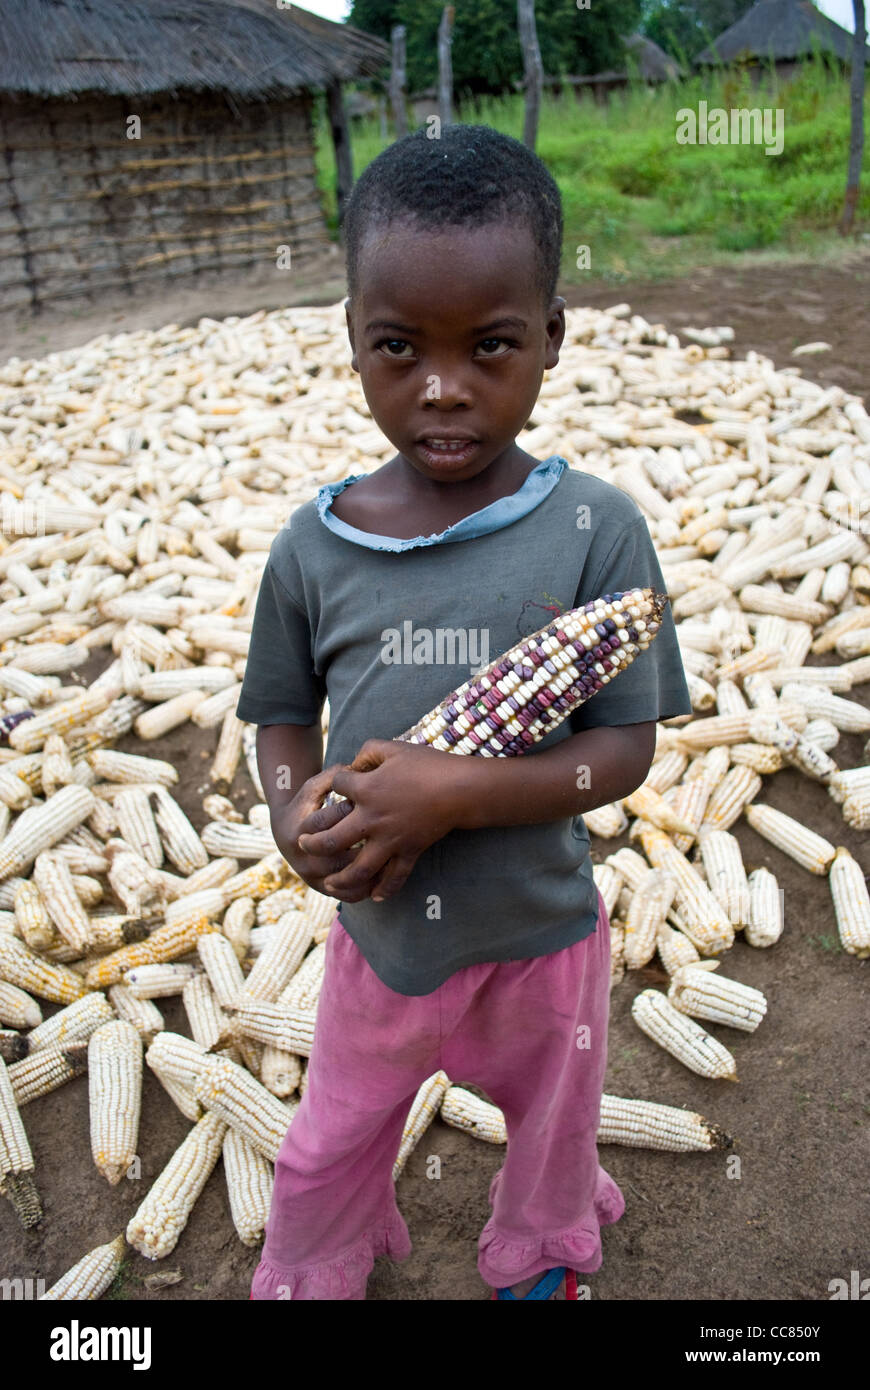 A Zambian boy clutches a 'mealie' maize. Maize is a diet staple in Zambia. - Stock Image